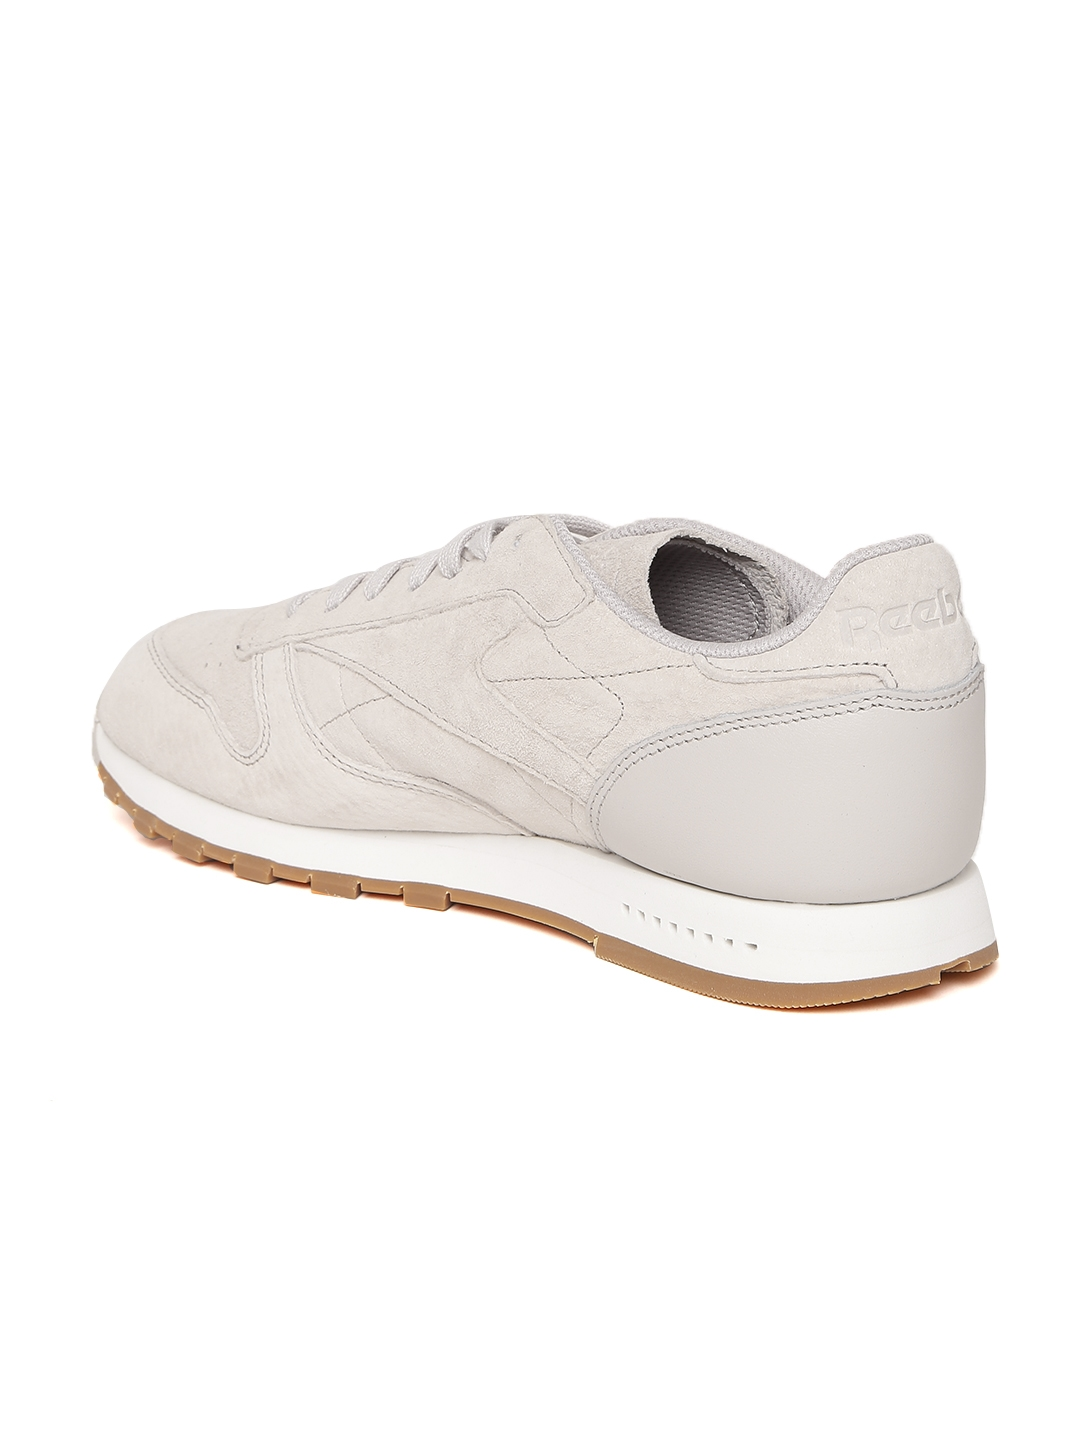 e4ea745876e Buy Reebok Classic Men Beige CL Leather SG Sneakers - Casual Shoes ...